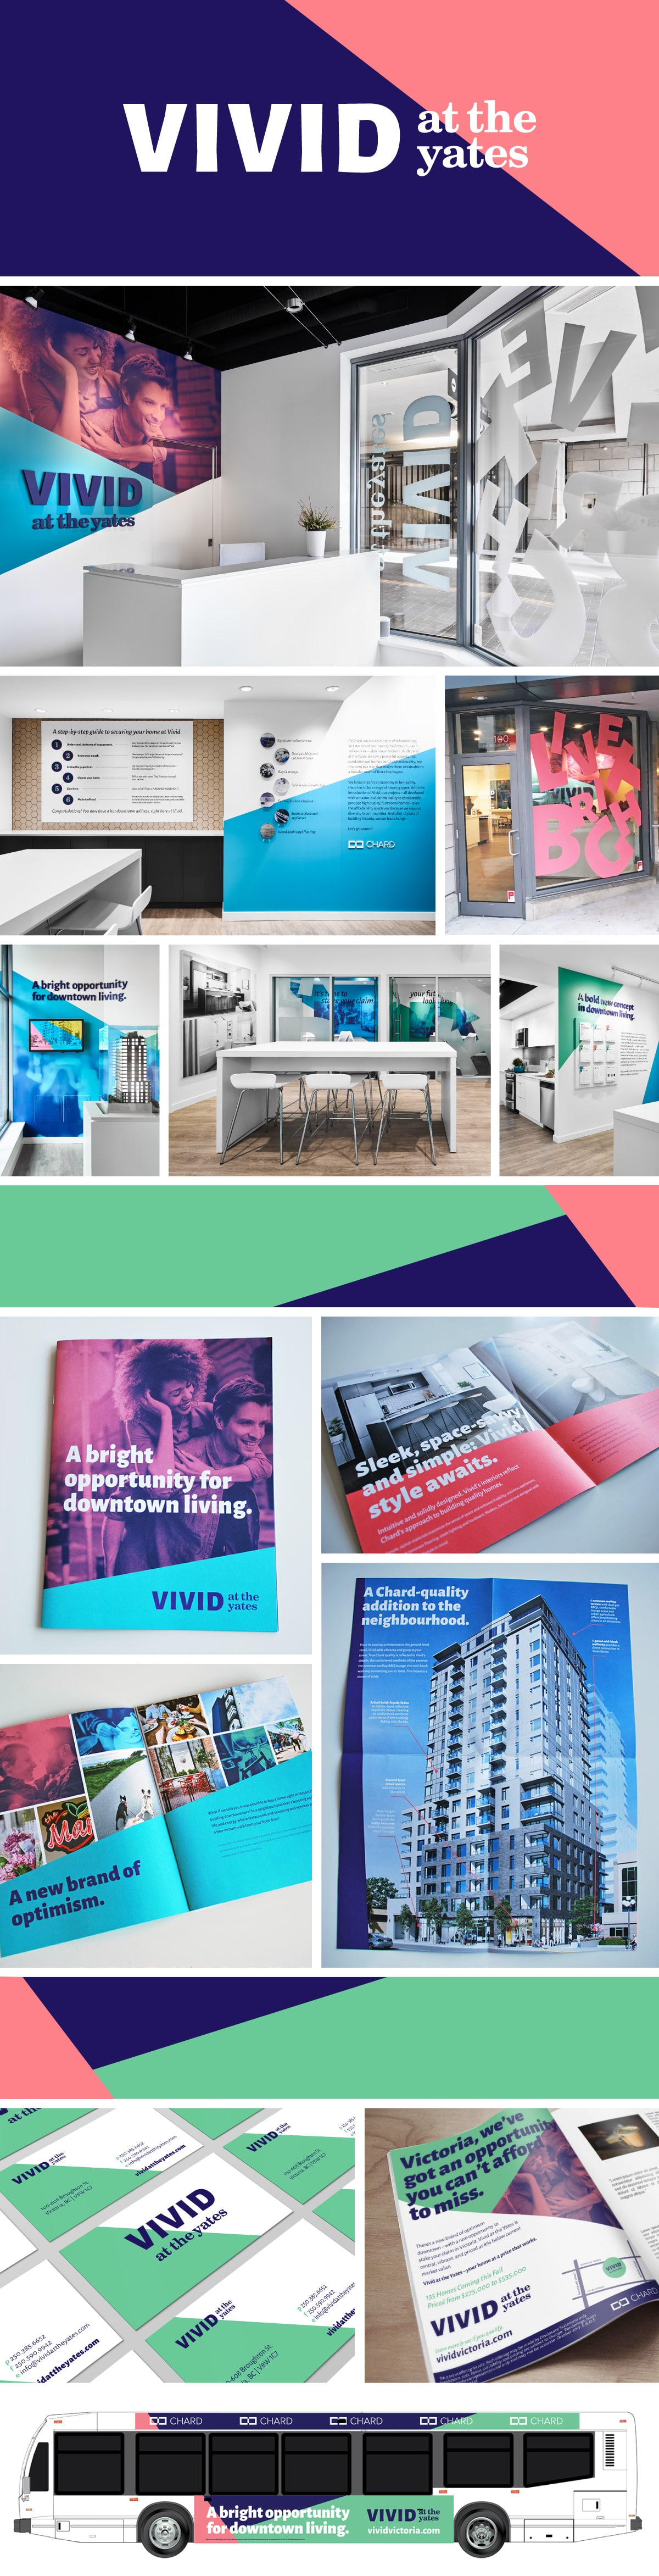 vivid graphic design portfolio